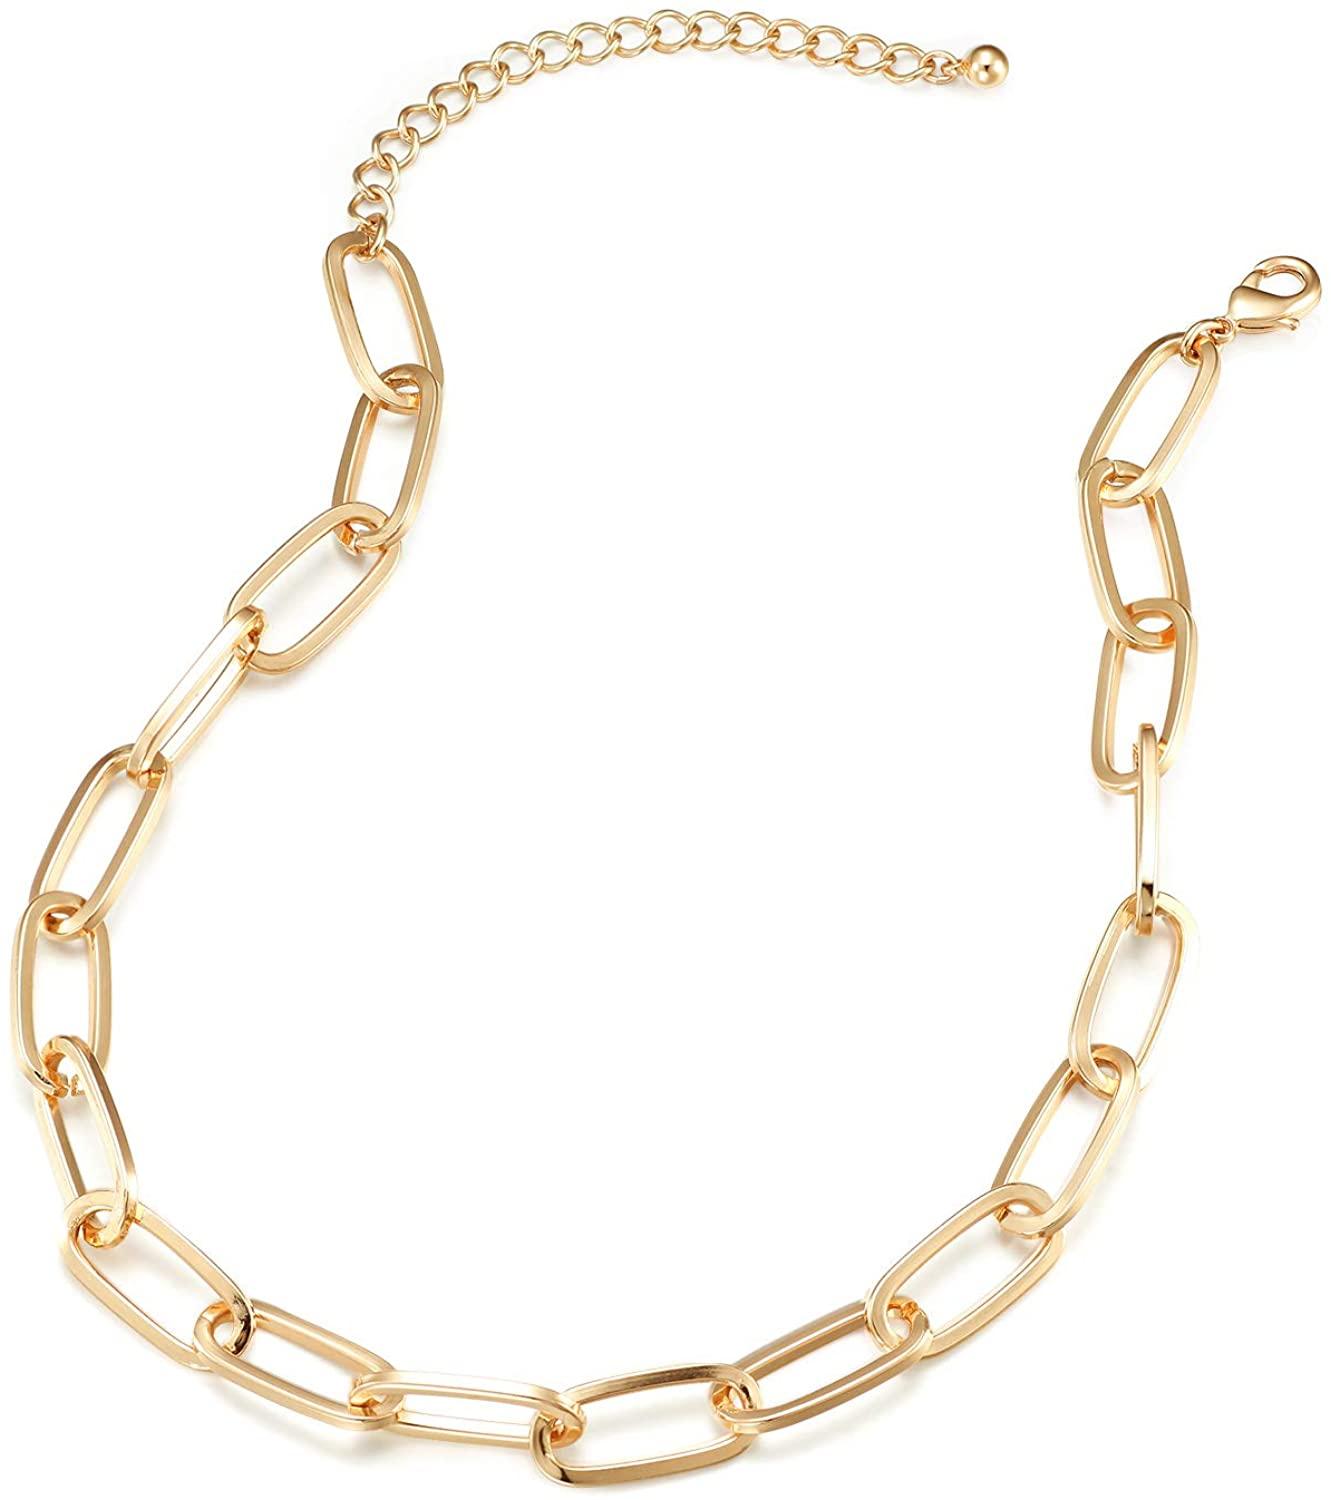 GL526CHN Heavy Gold Plated Anti-Tarnished Coated, Chunky Paperclip Chain